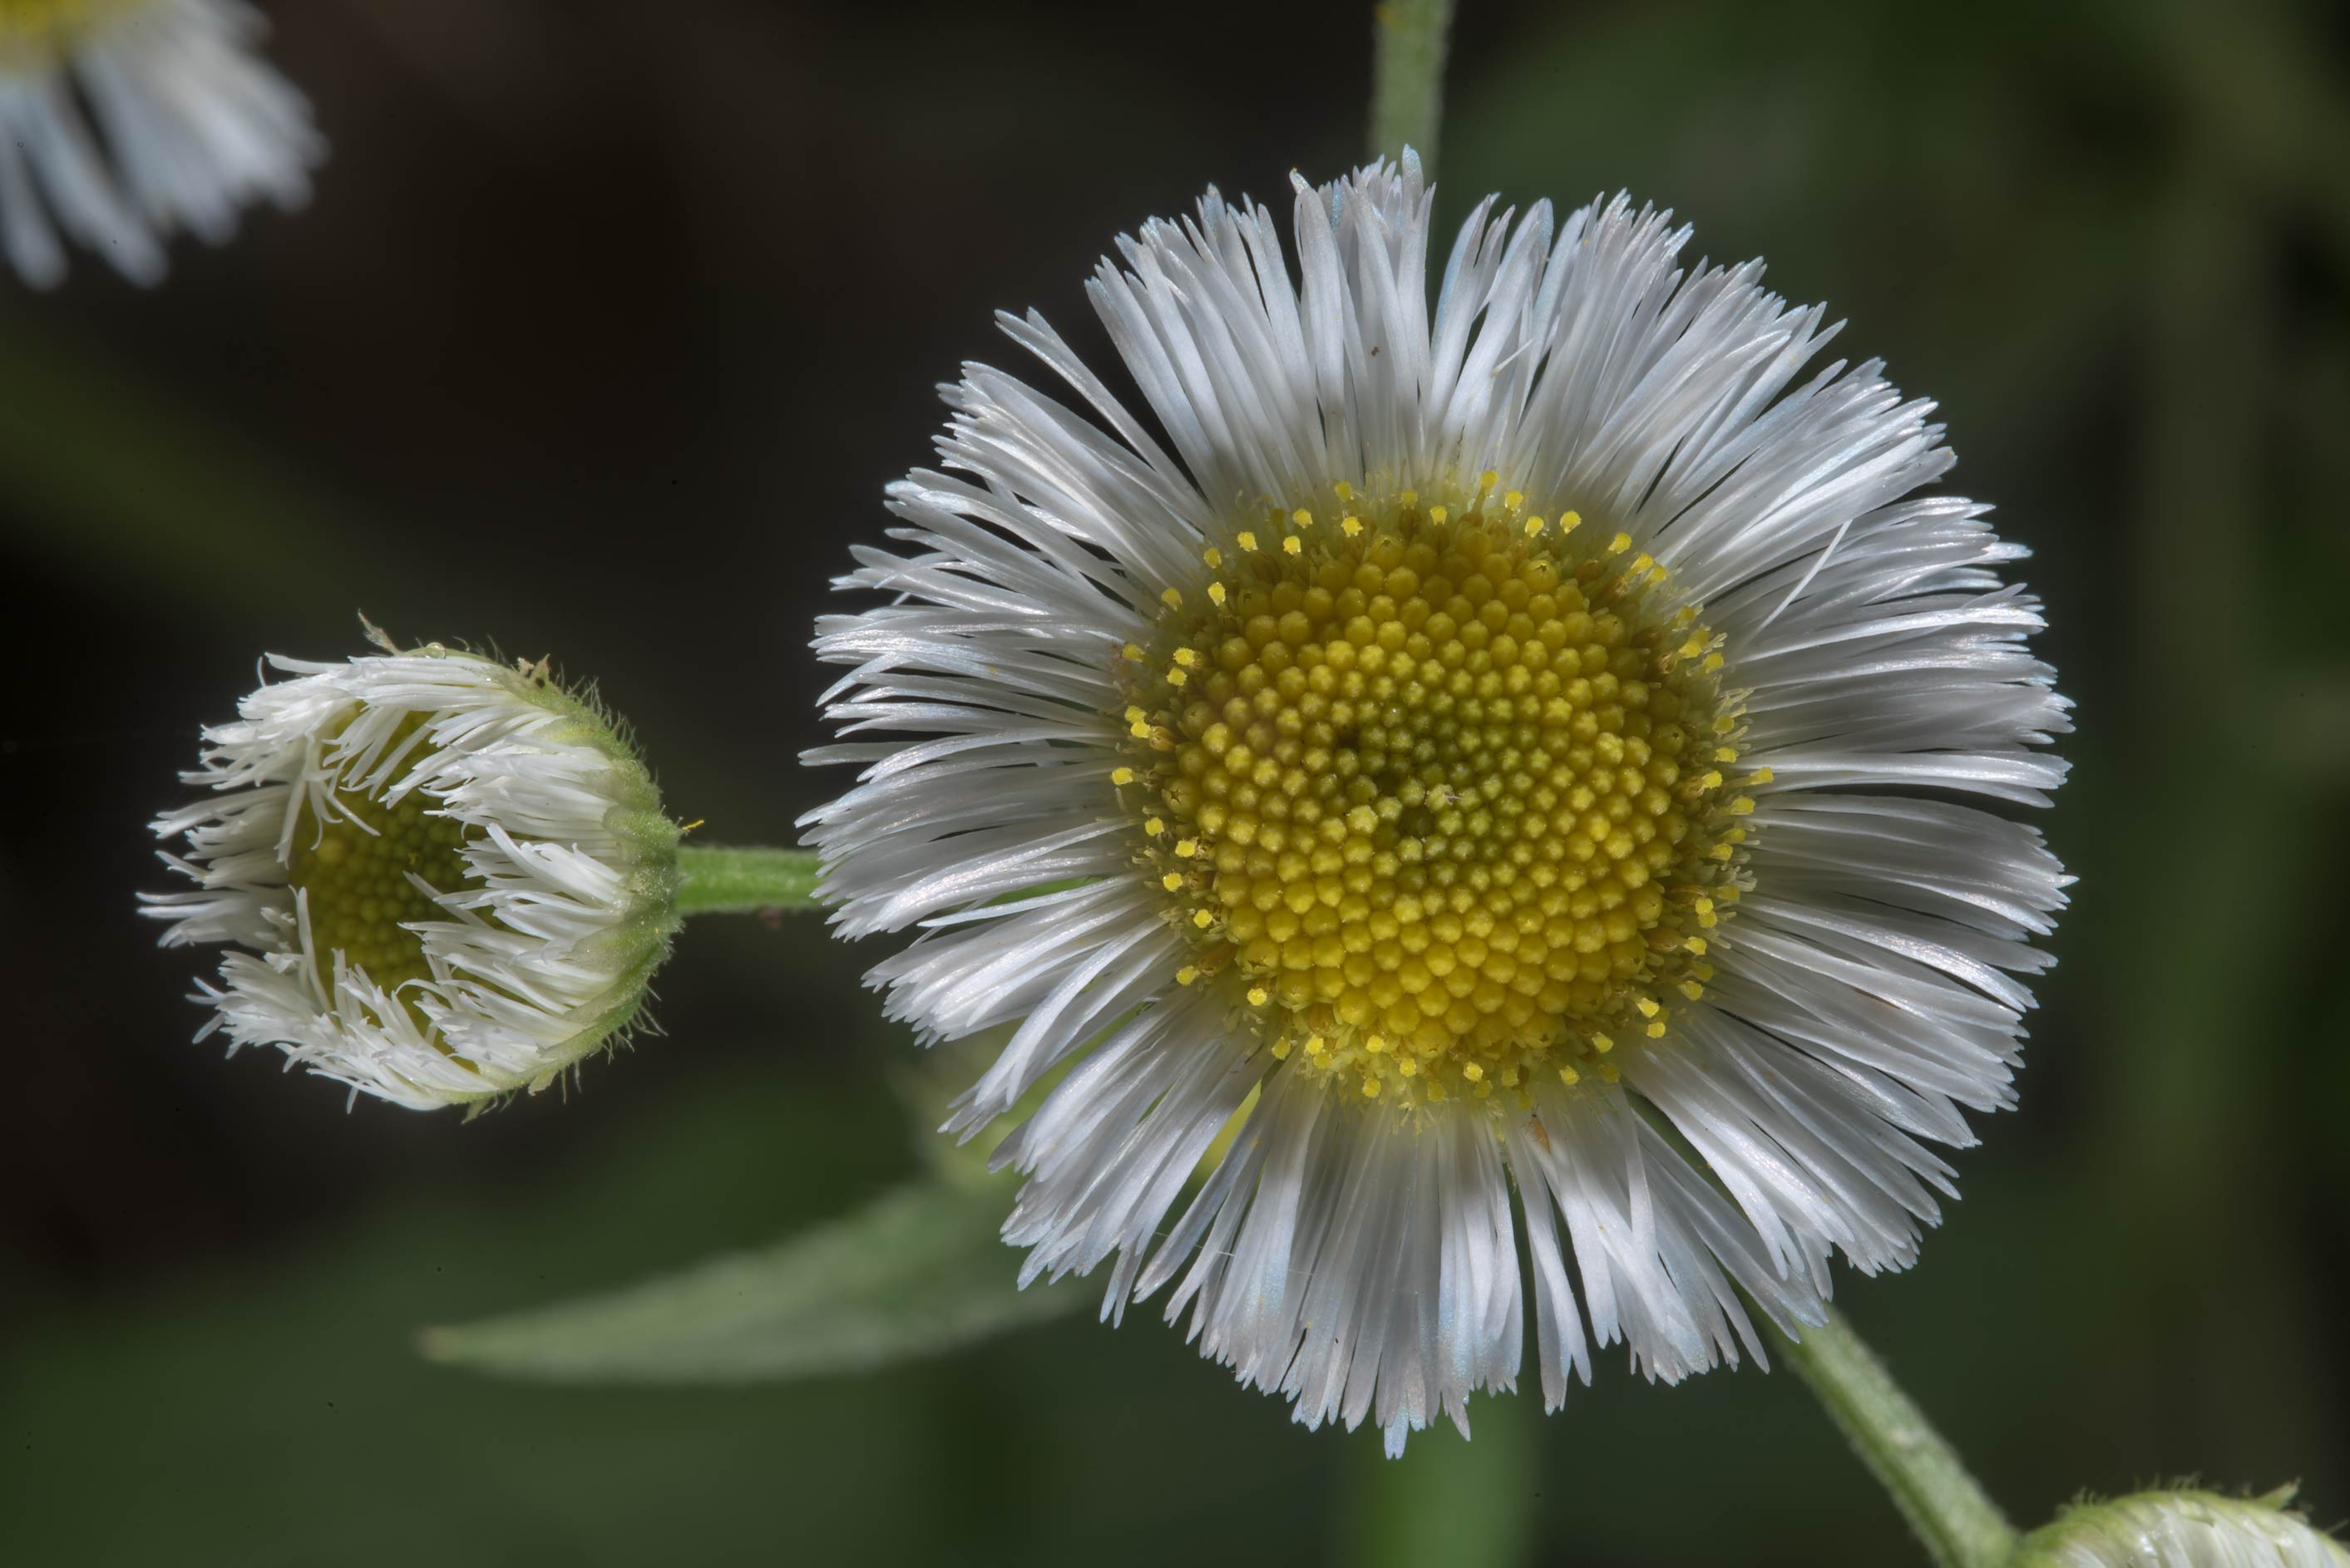 Fleaban daisy (Erigeron) on Racoon Run Trail in Lick Creek Park. College Station, Texas